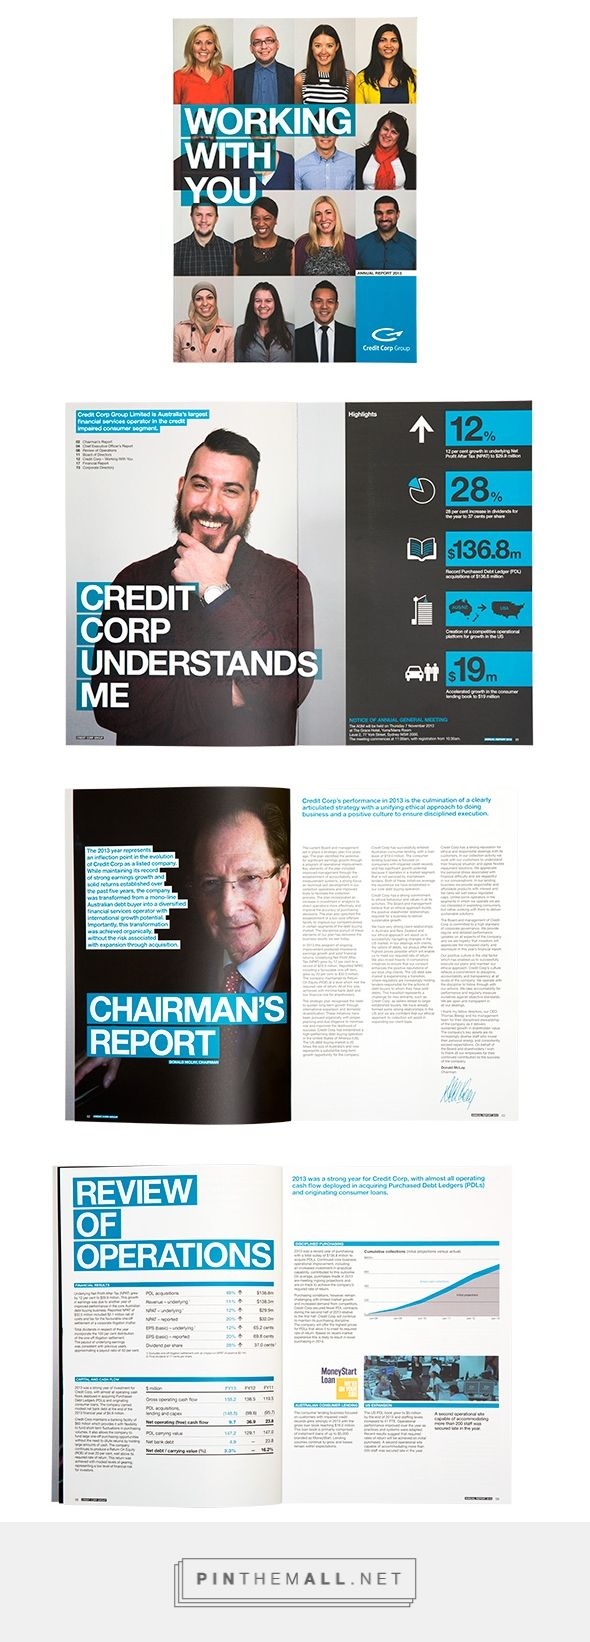 DESIGNDAVEY - 3/14 - HIGH END CORPORATE DESIGN -  Credit Corp Annual Report 2013 created via http://pinthemall.net